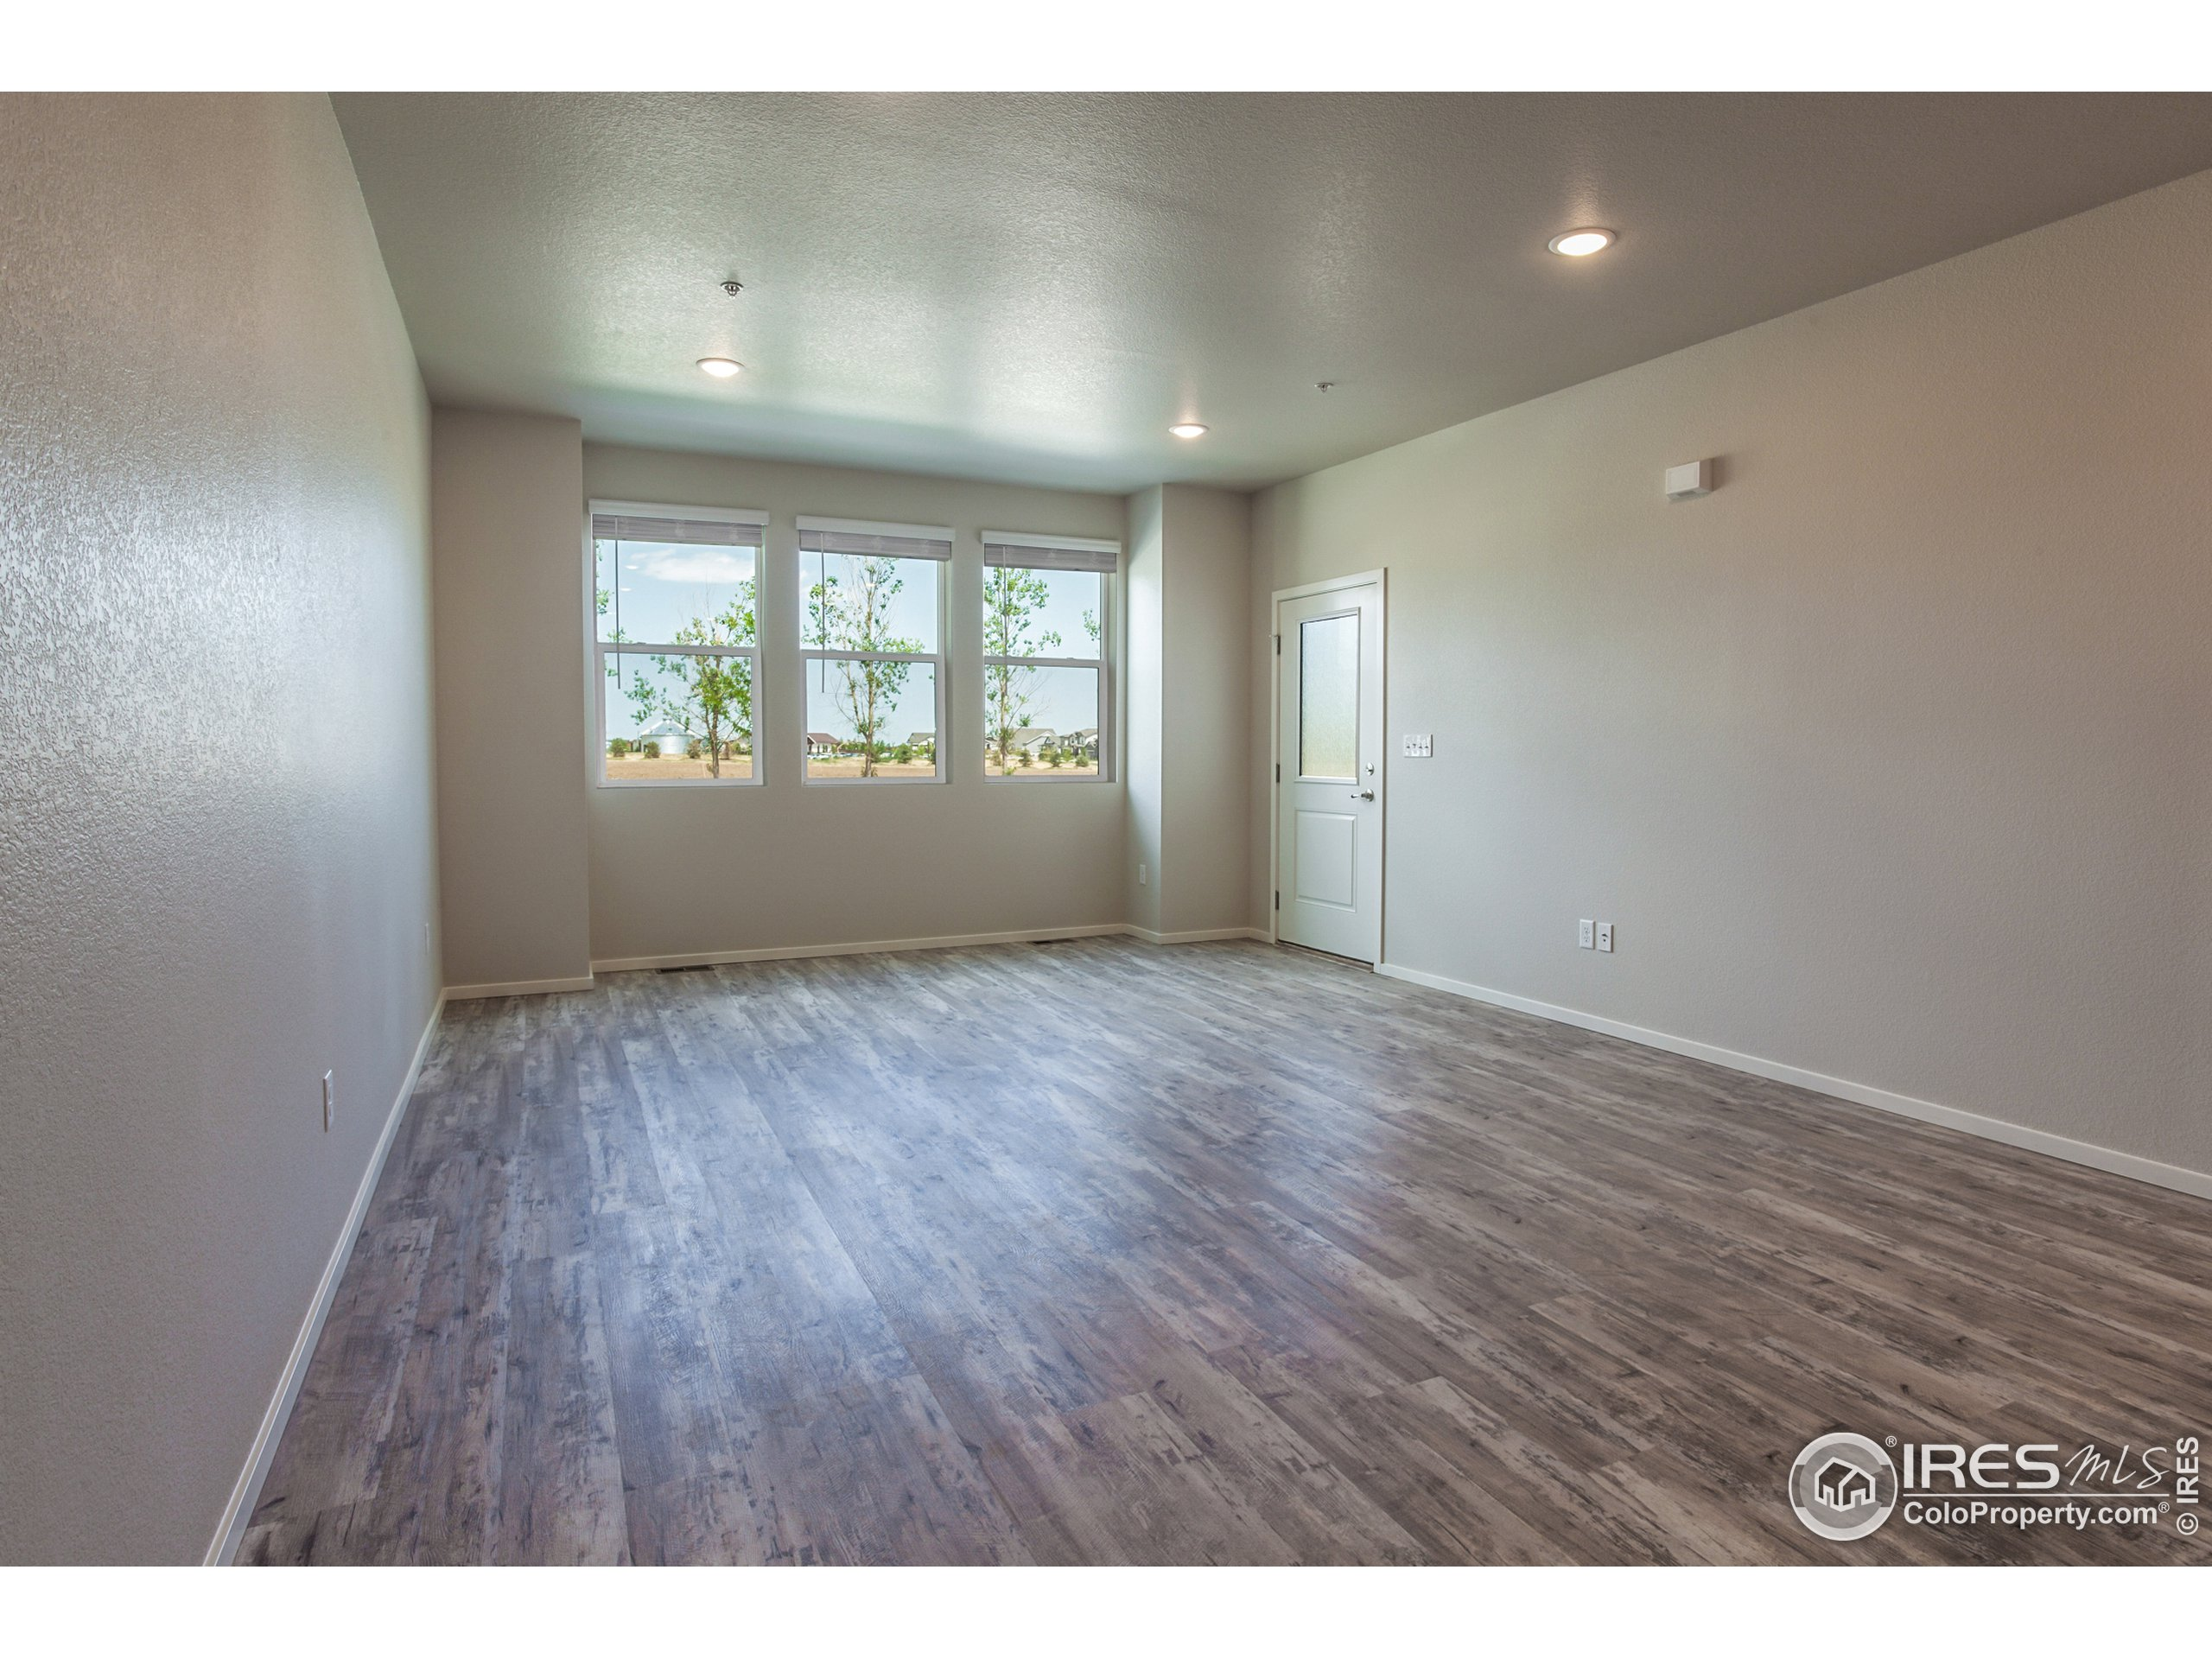 EXAMPLE PHOTOS: LIVING ROOM